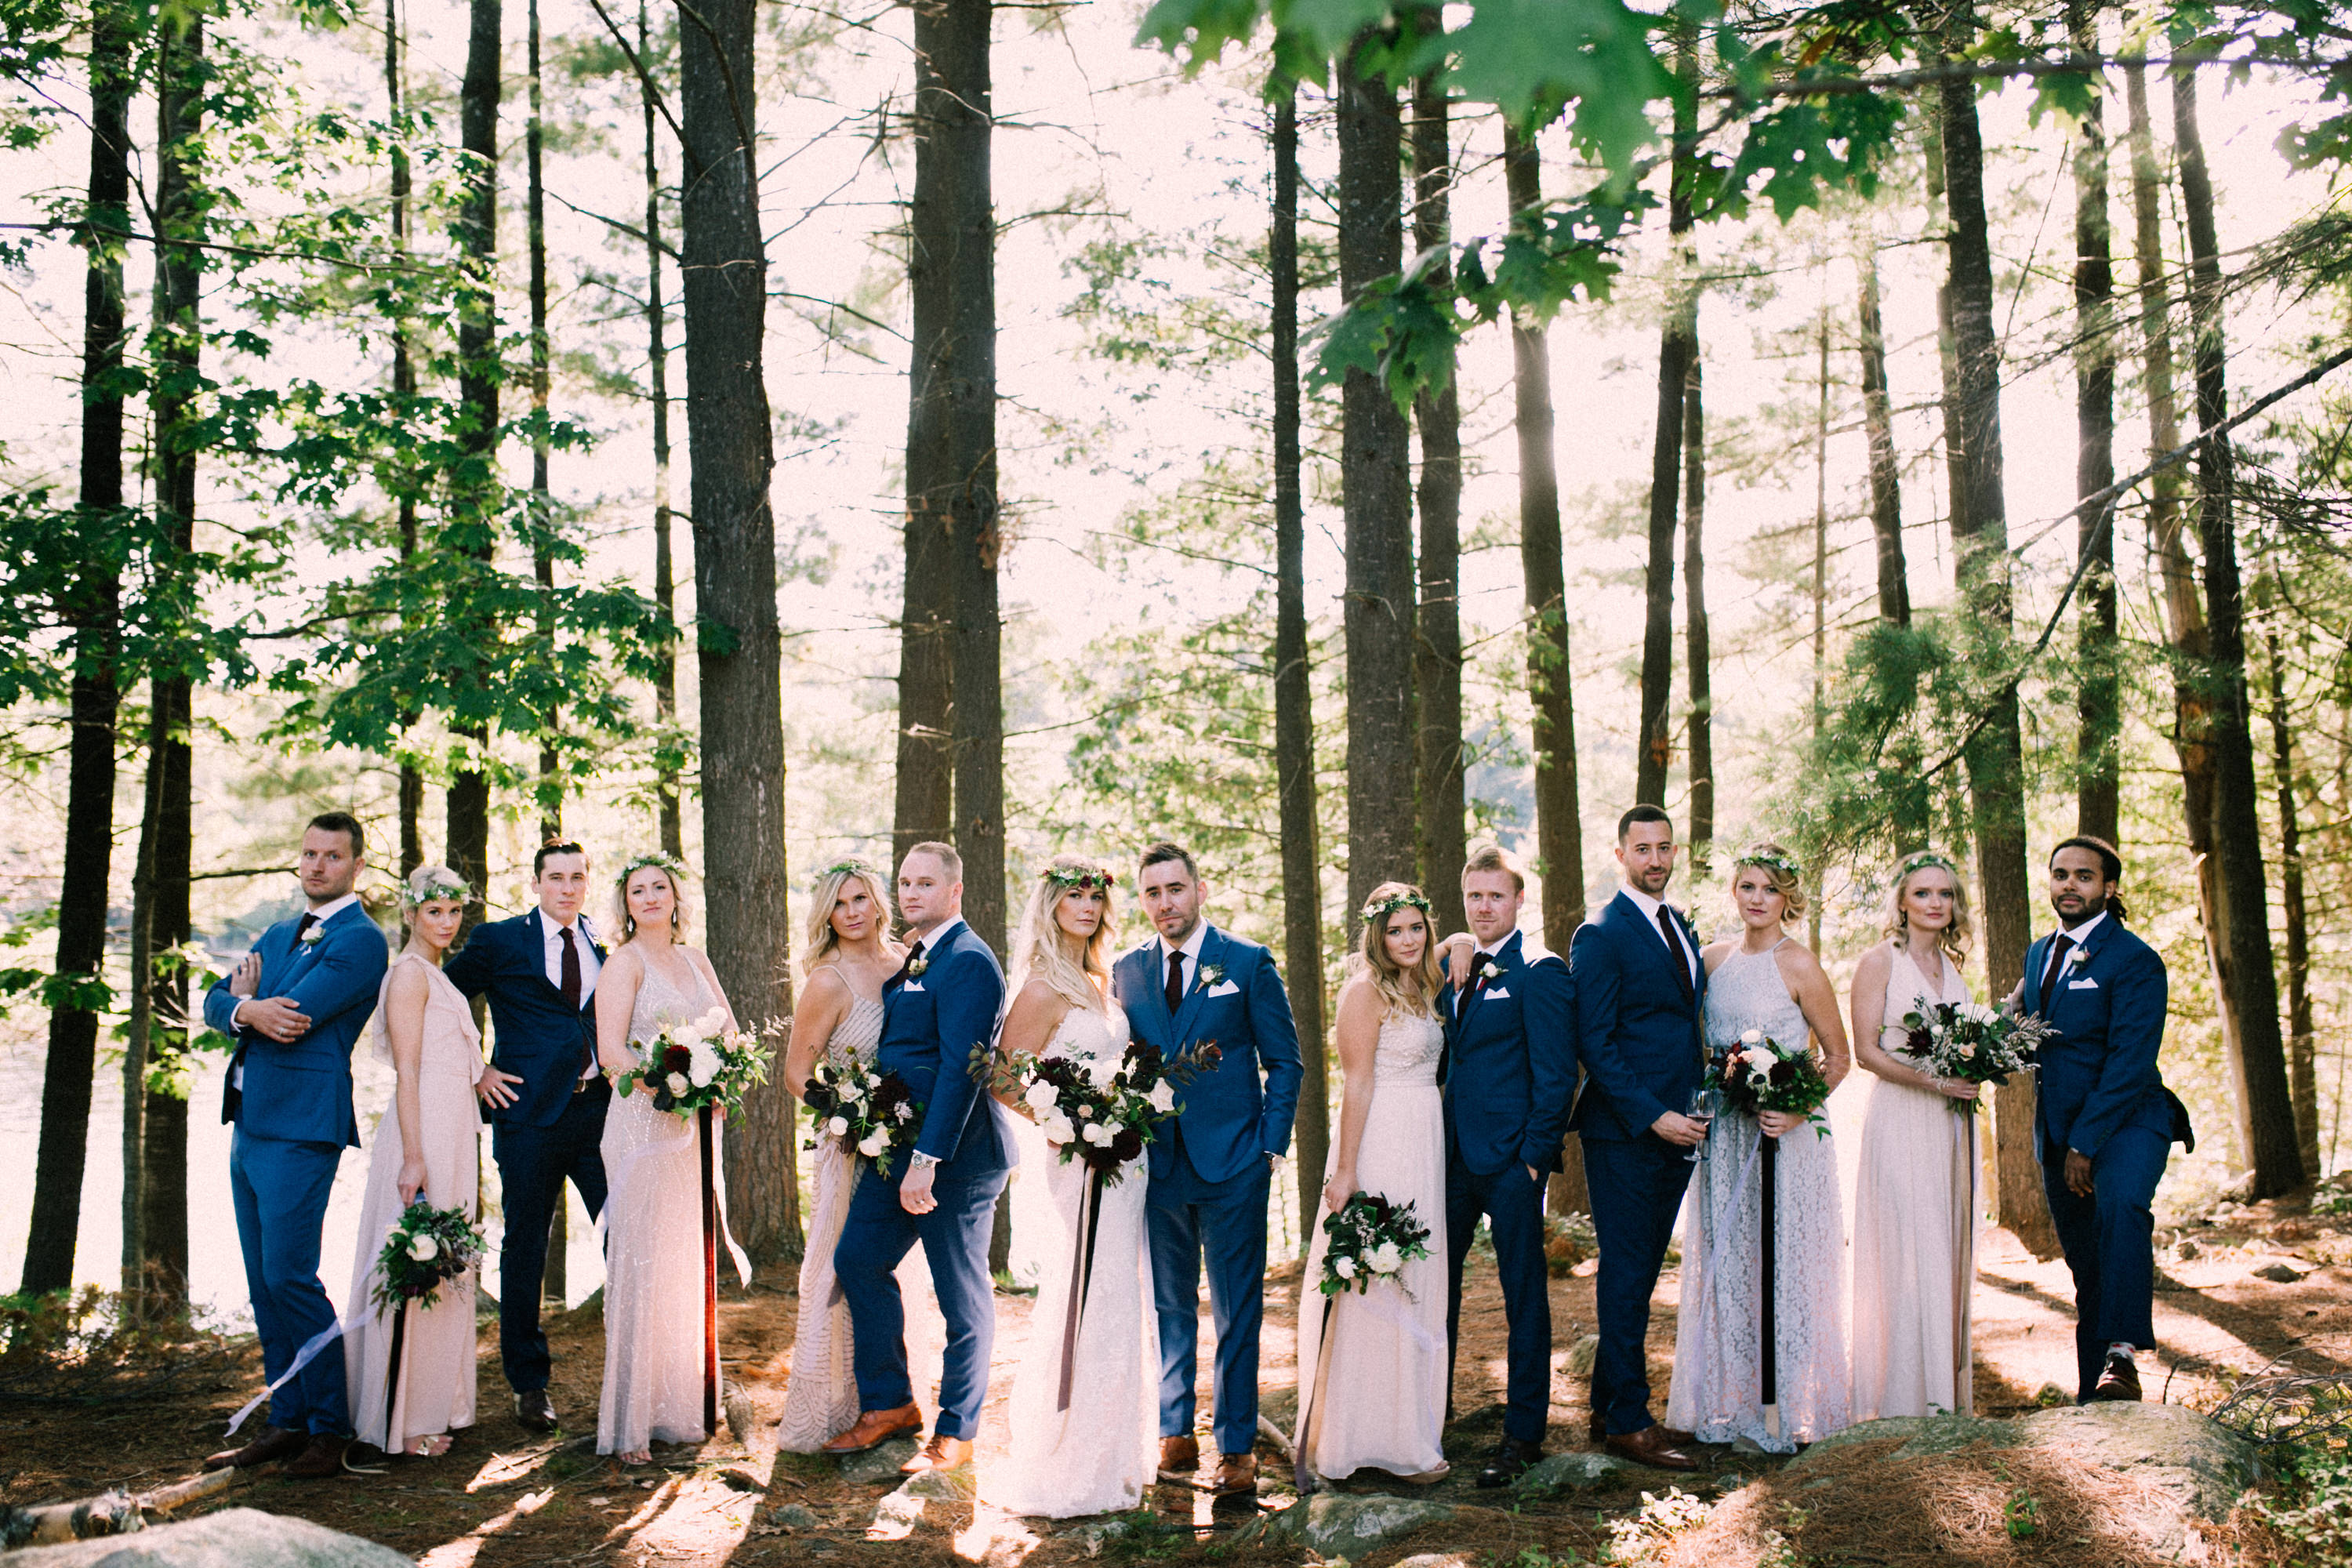 Muskoka lakeside wedding at Port Cunnington Lodge by Max Wong Photo (32)